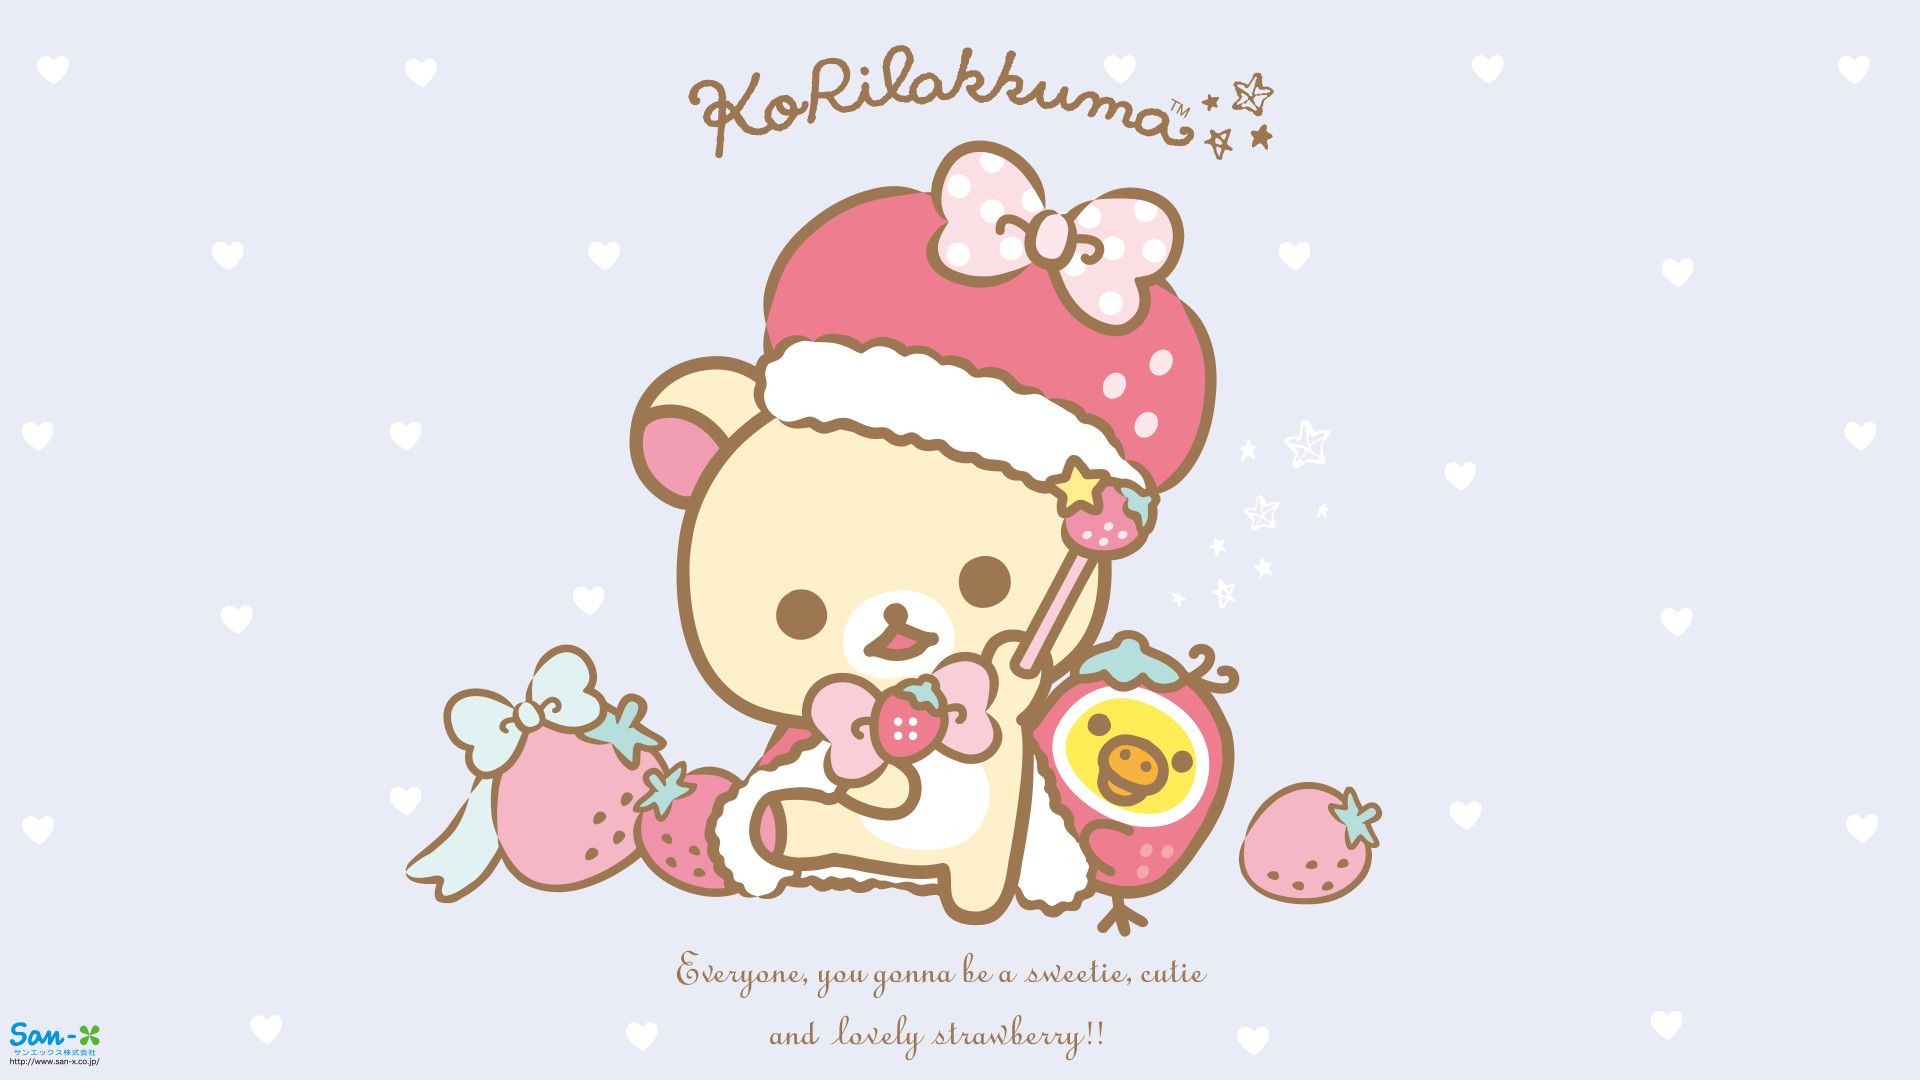 1920x1080 1080 x 1920 in 2019 Rilakkuma wallpaper, Cute